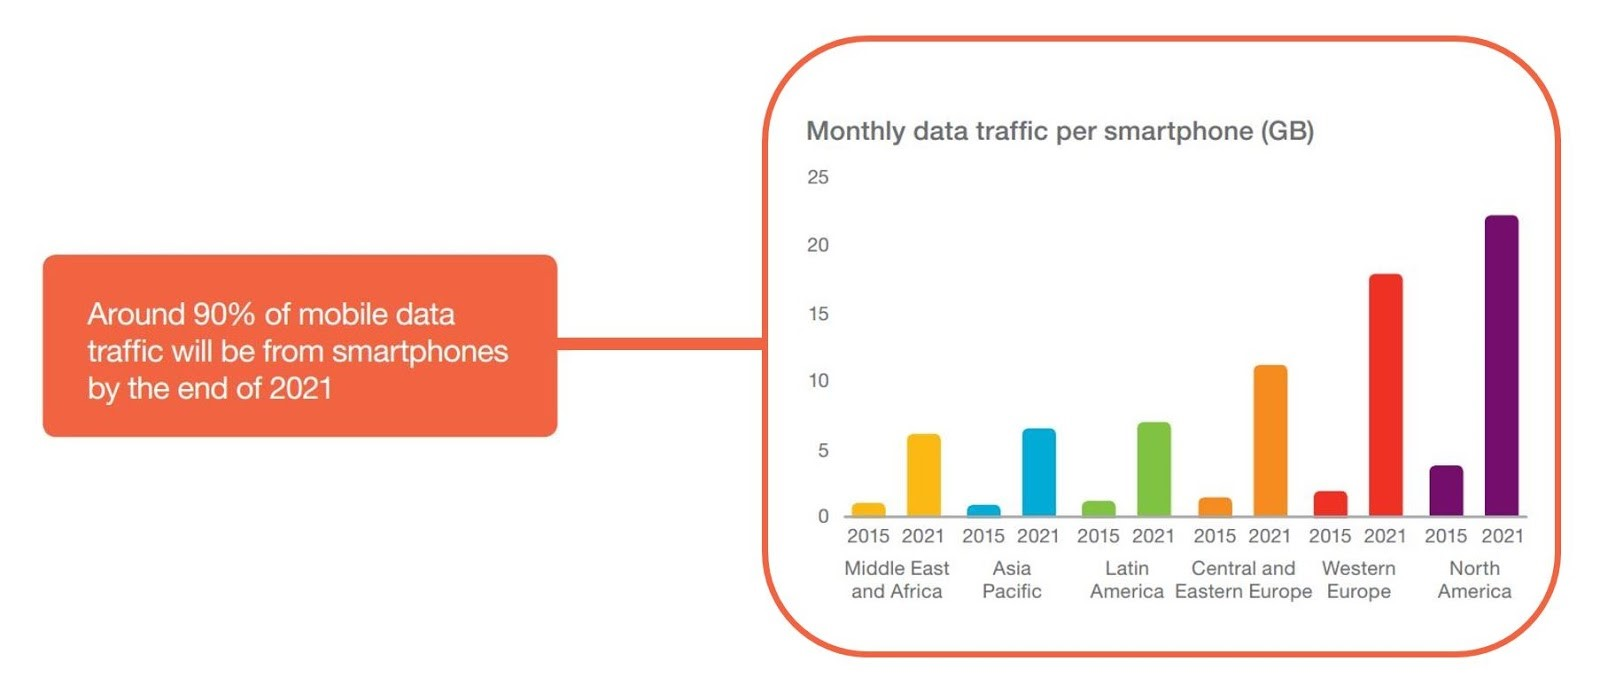 By the End of 2021, 90% of Mobile Data Traffic Will Be from Smartphones